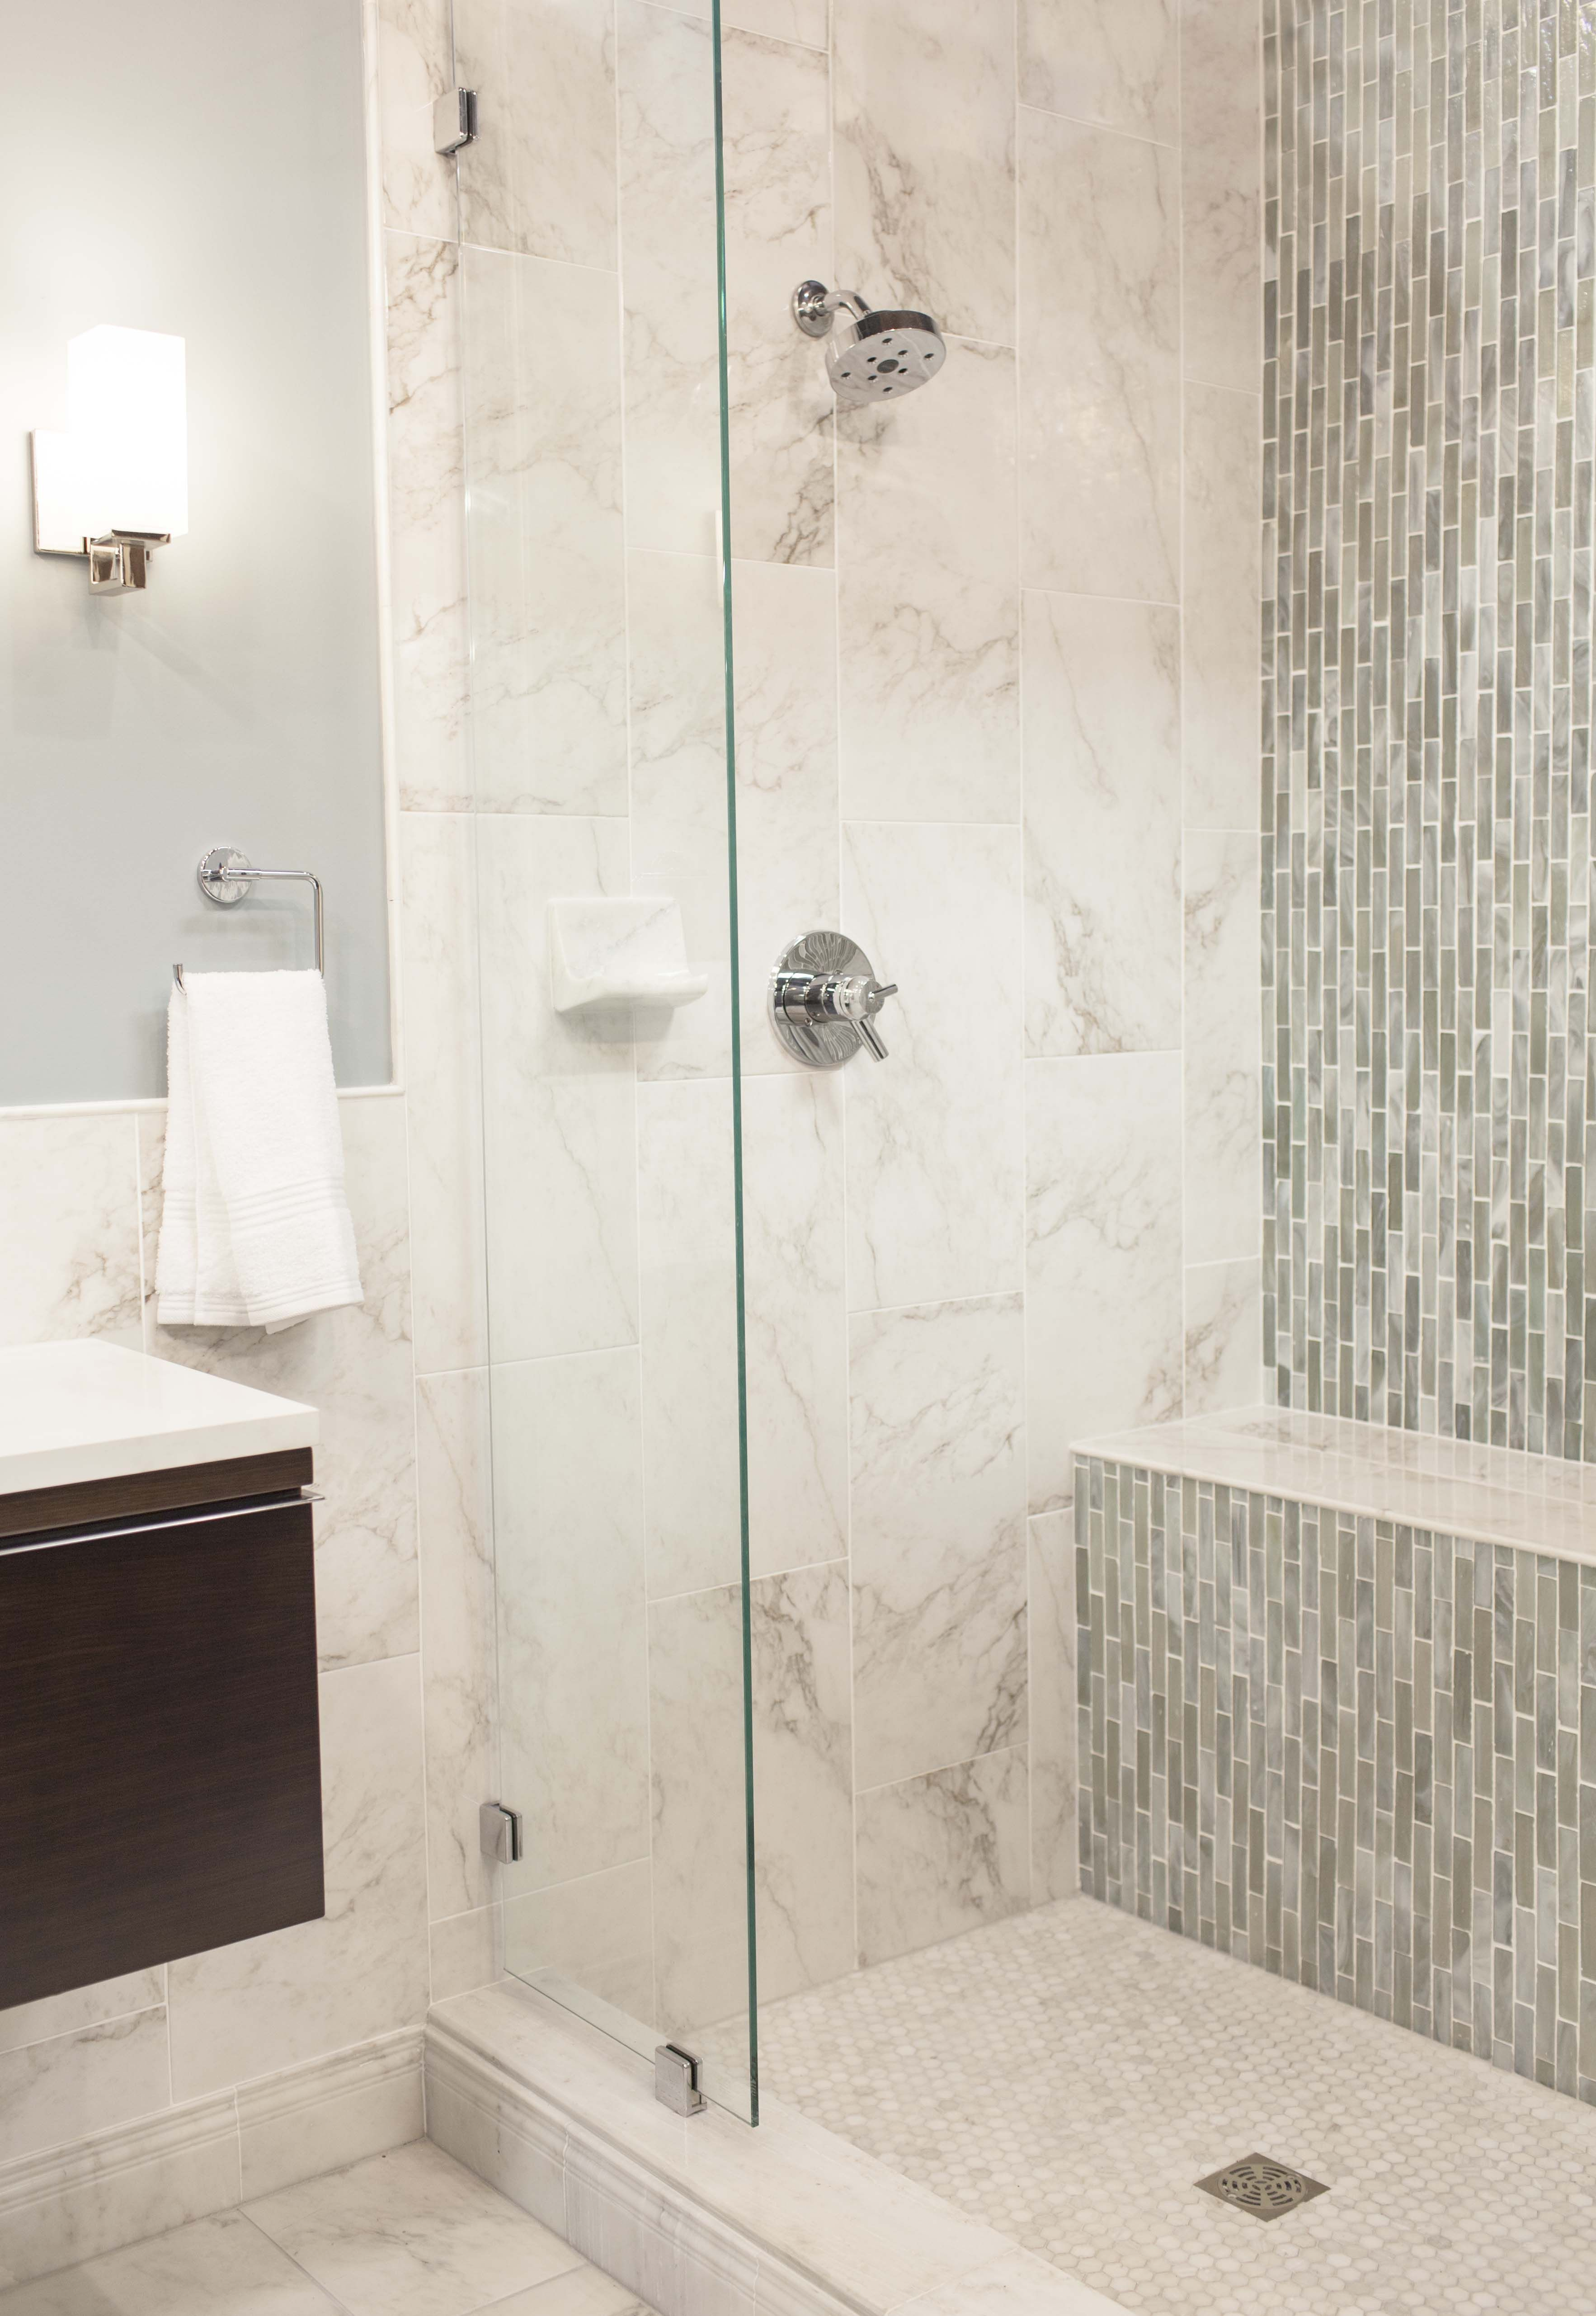 Cool bluegreen glass mosaic accents this contemporary shower